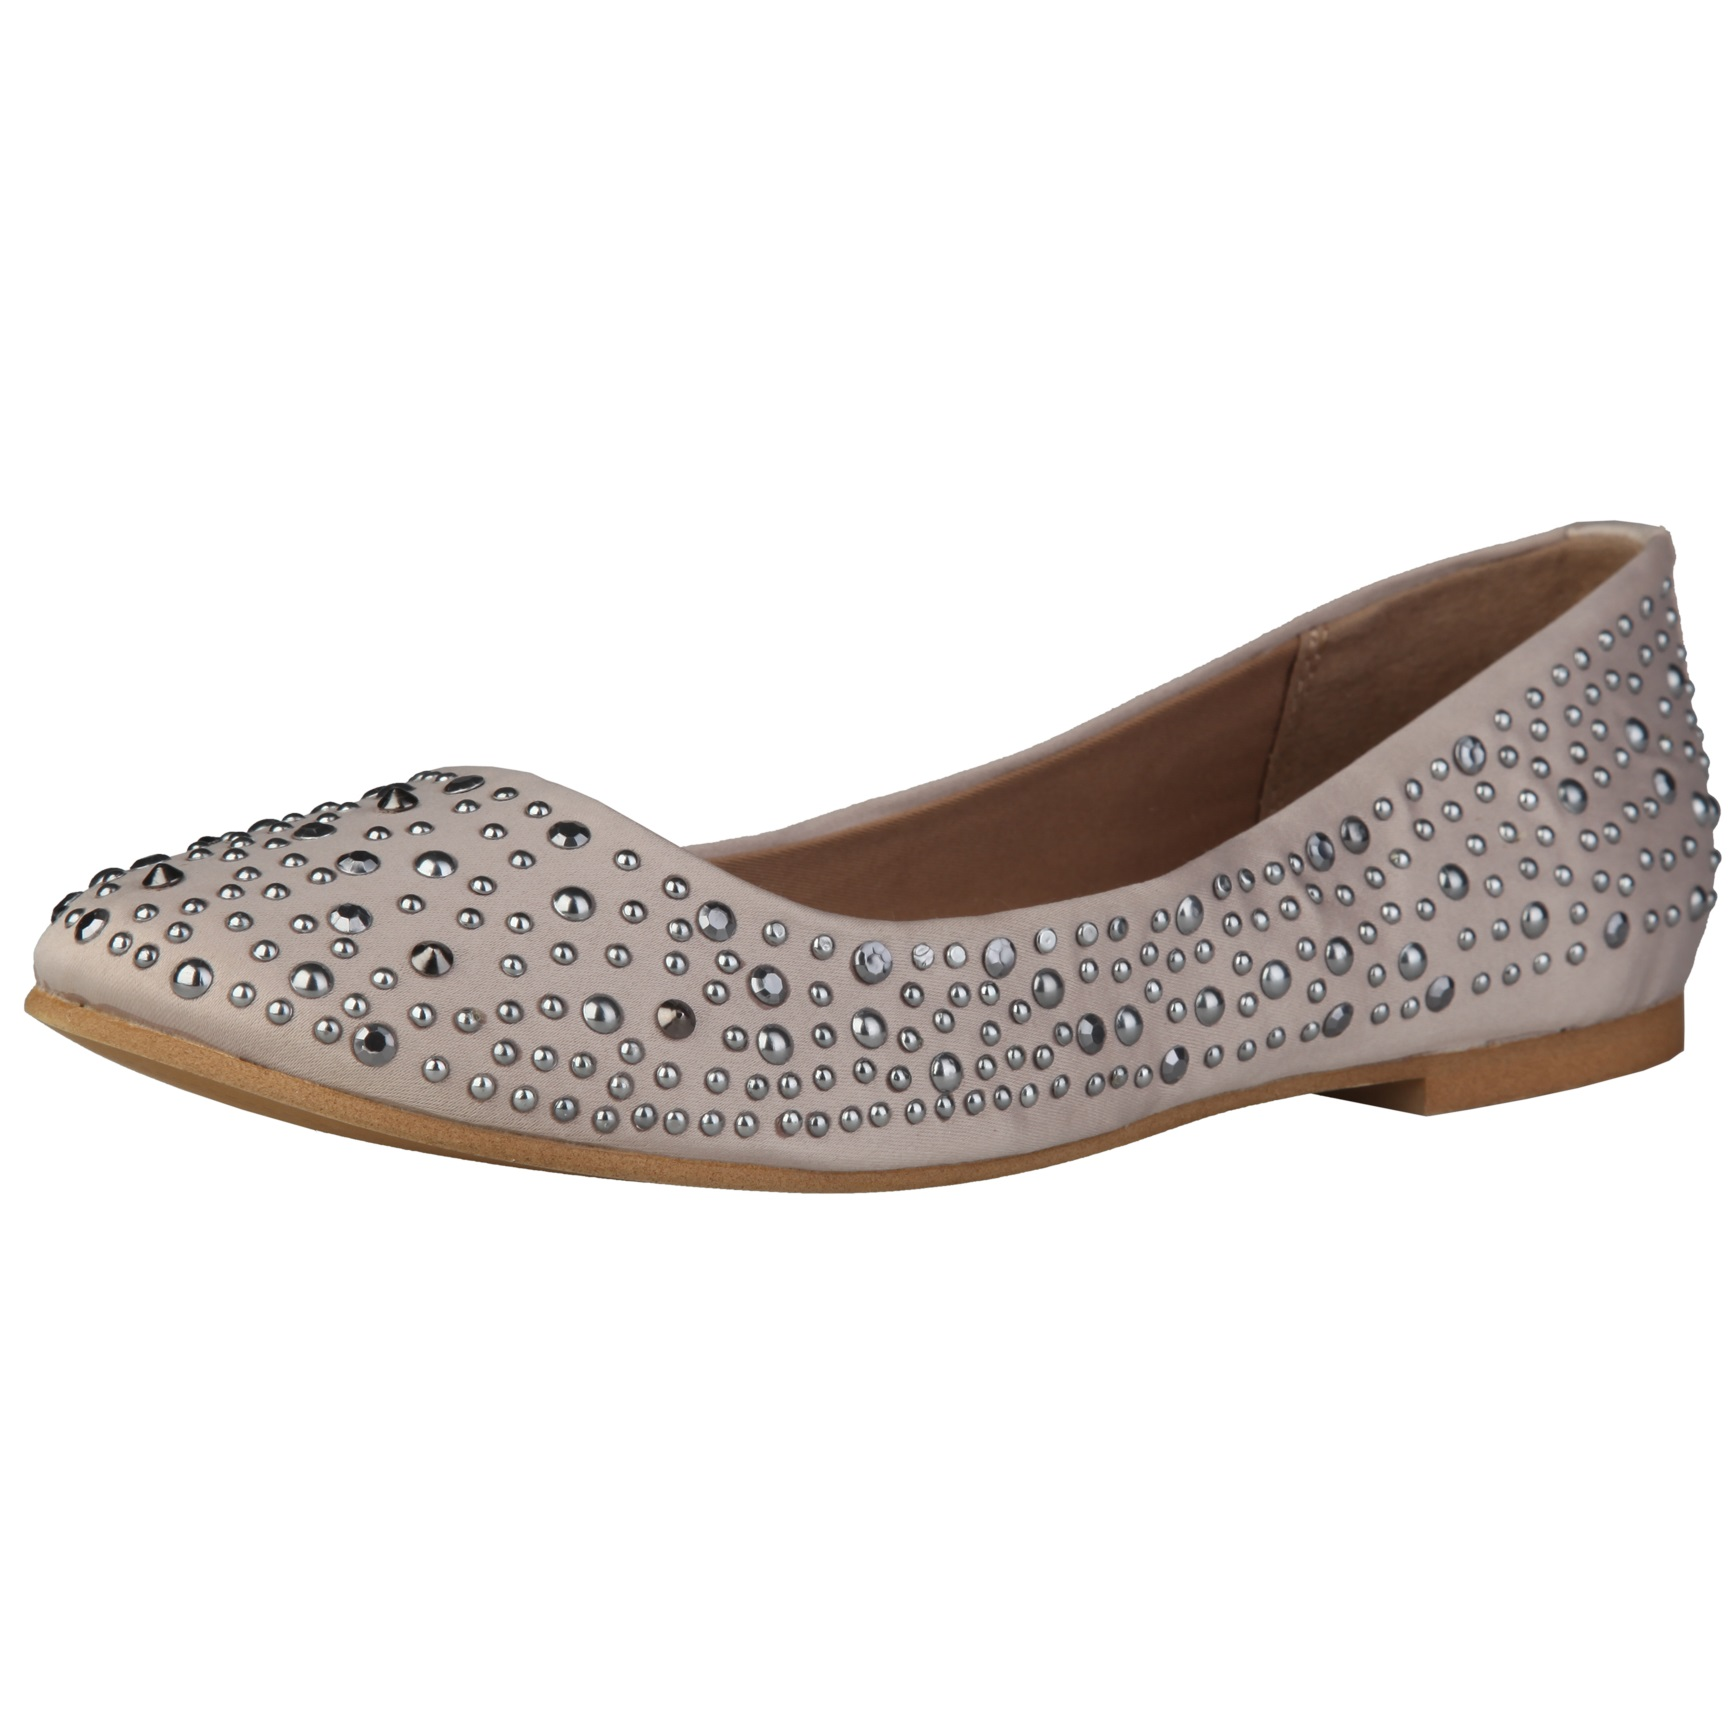 Sofia Loes Flat Shoes Beige Rf600153